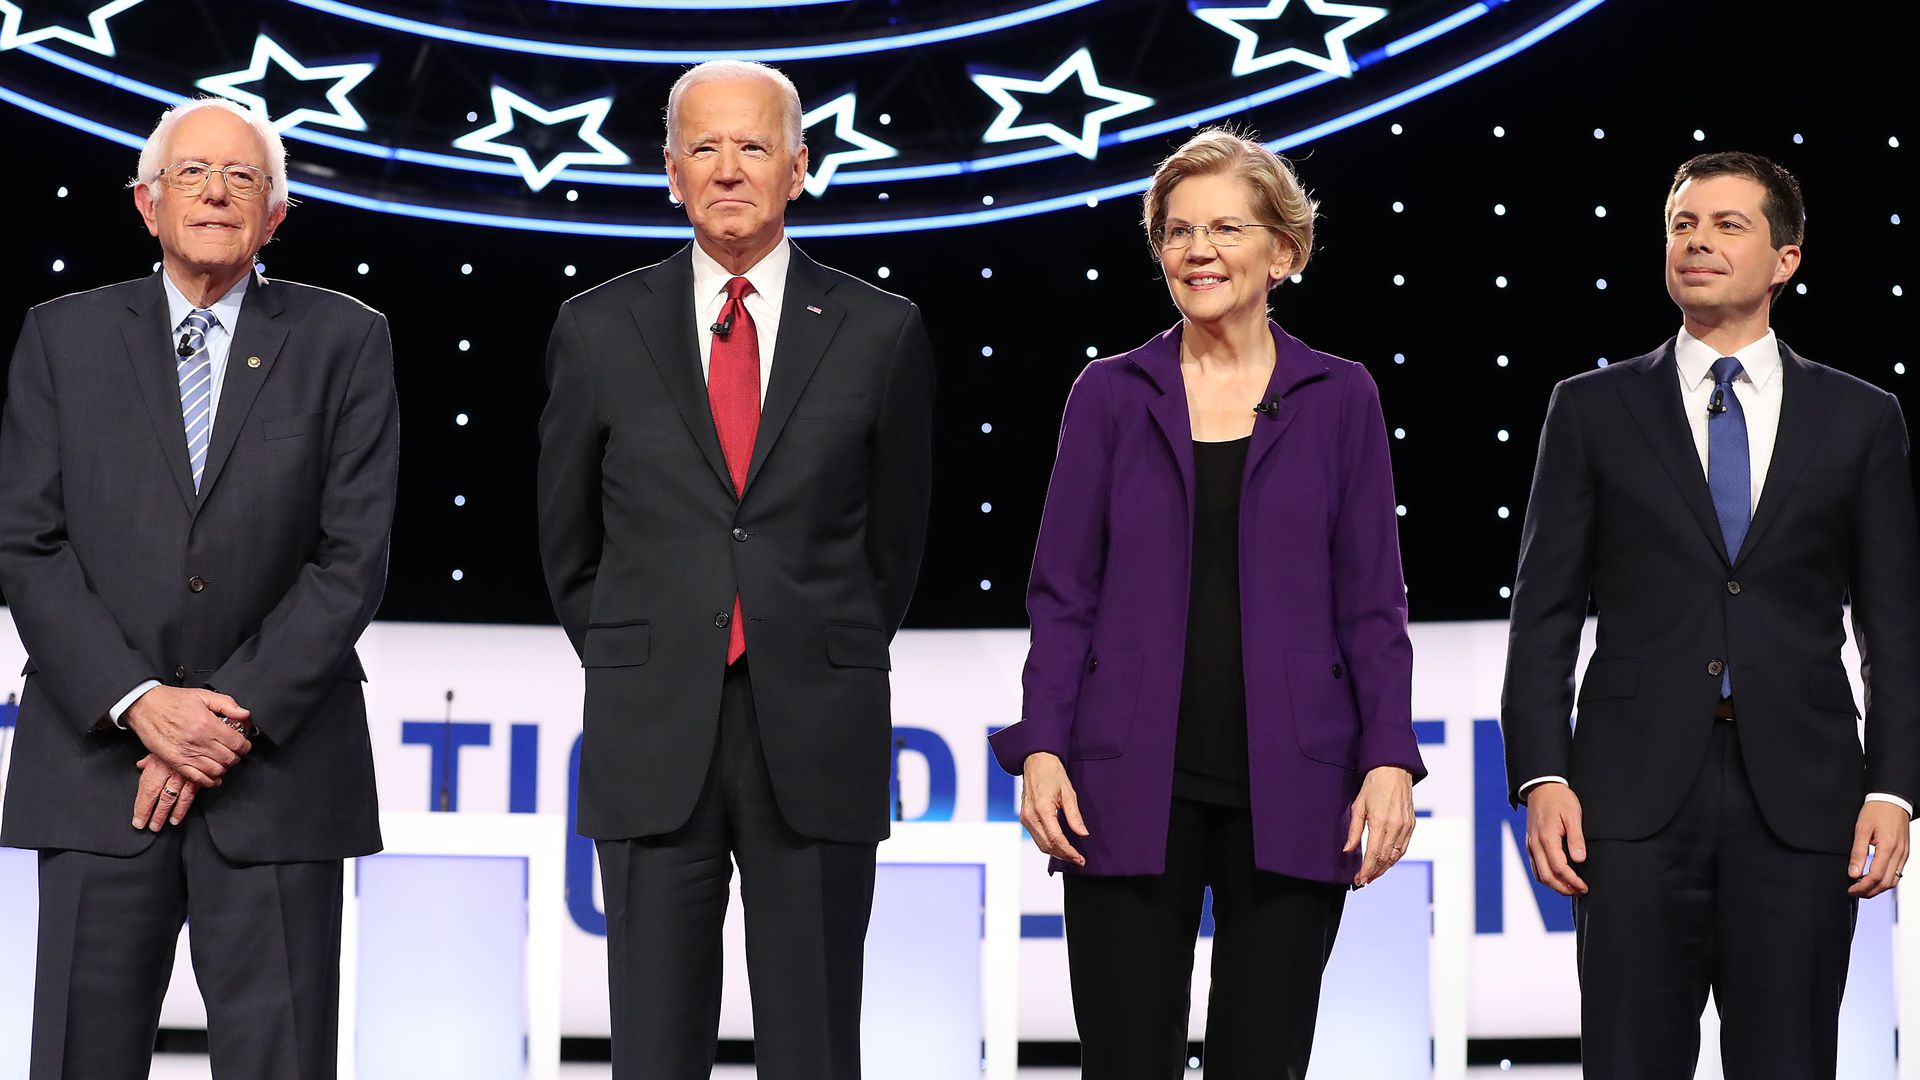 Sen. Bernie Sanders, Former Vice President Joe Biden, Sen. Elizabeth Warren and Mayor Pete Buttigieg